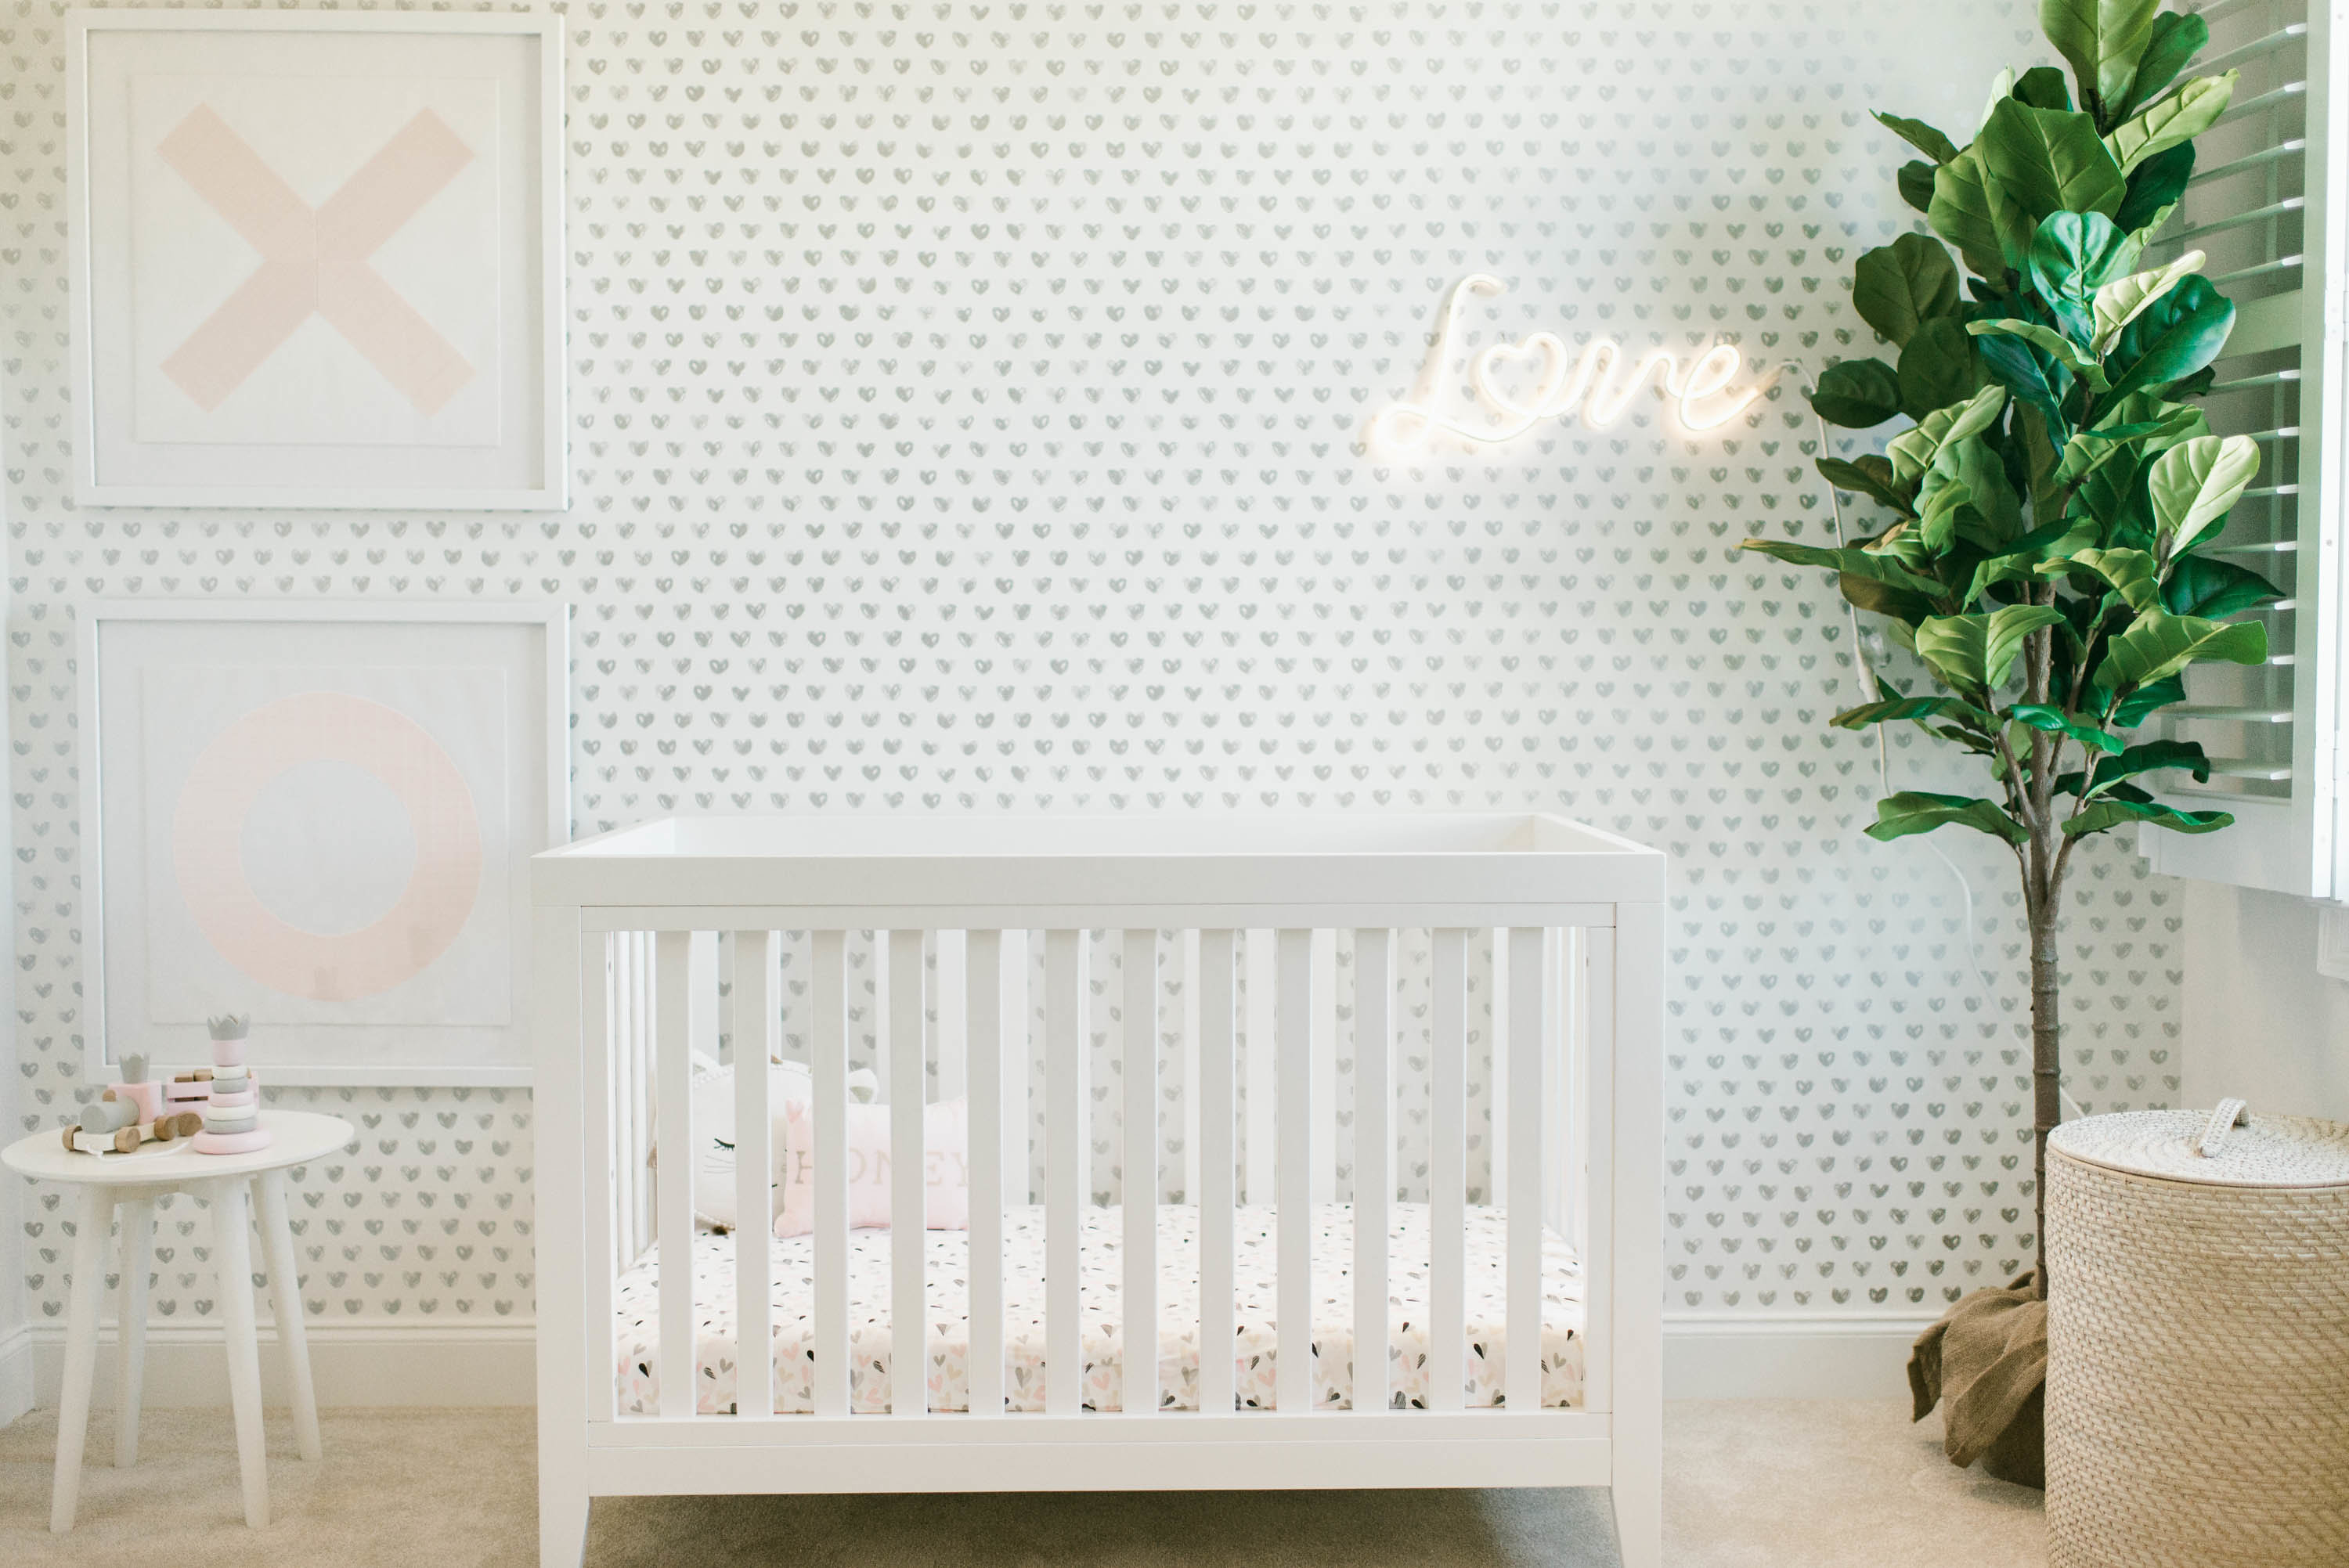 Shop the Room: Kingsley's XO Nursery...